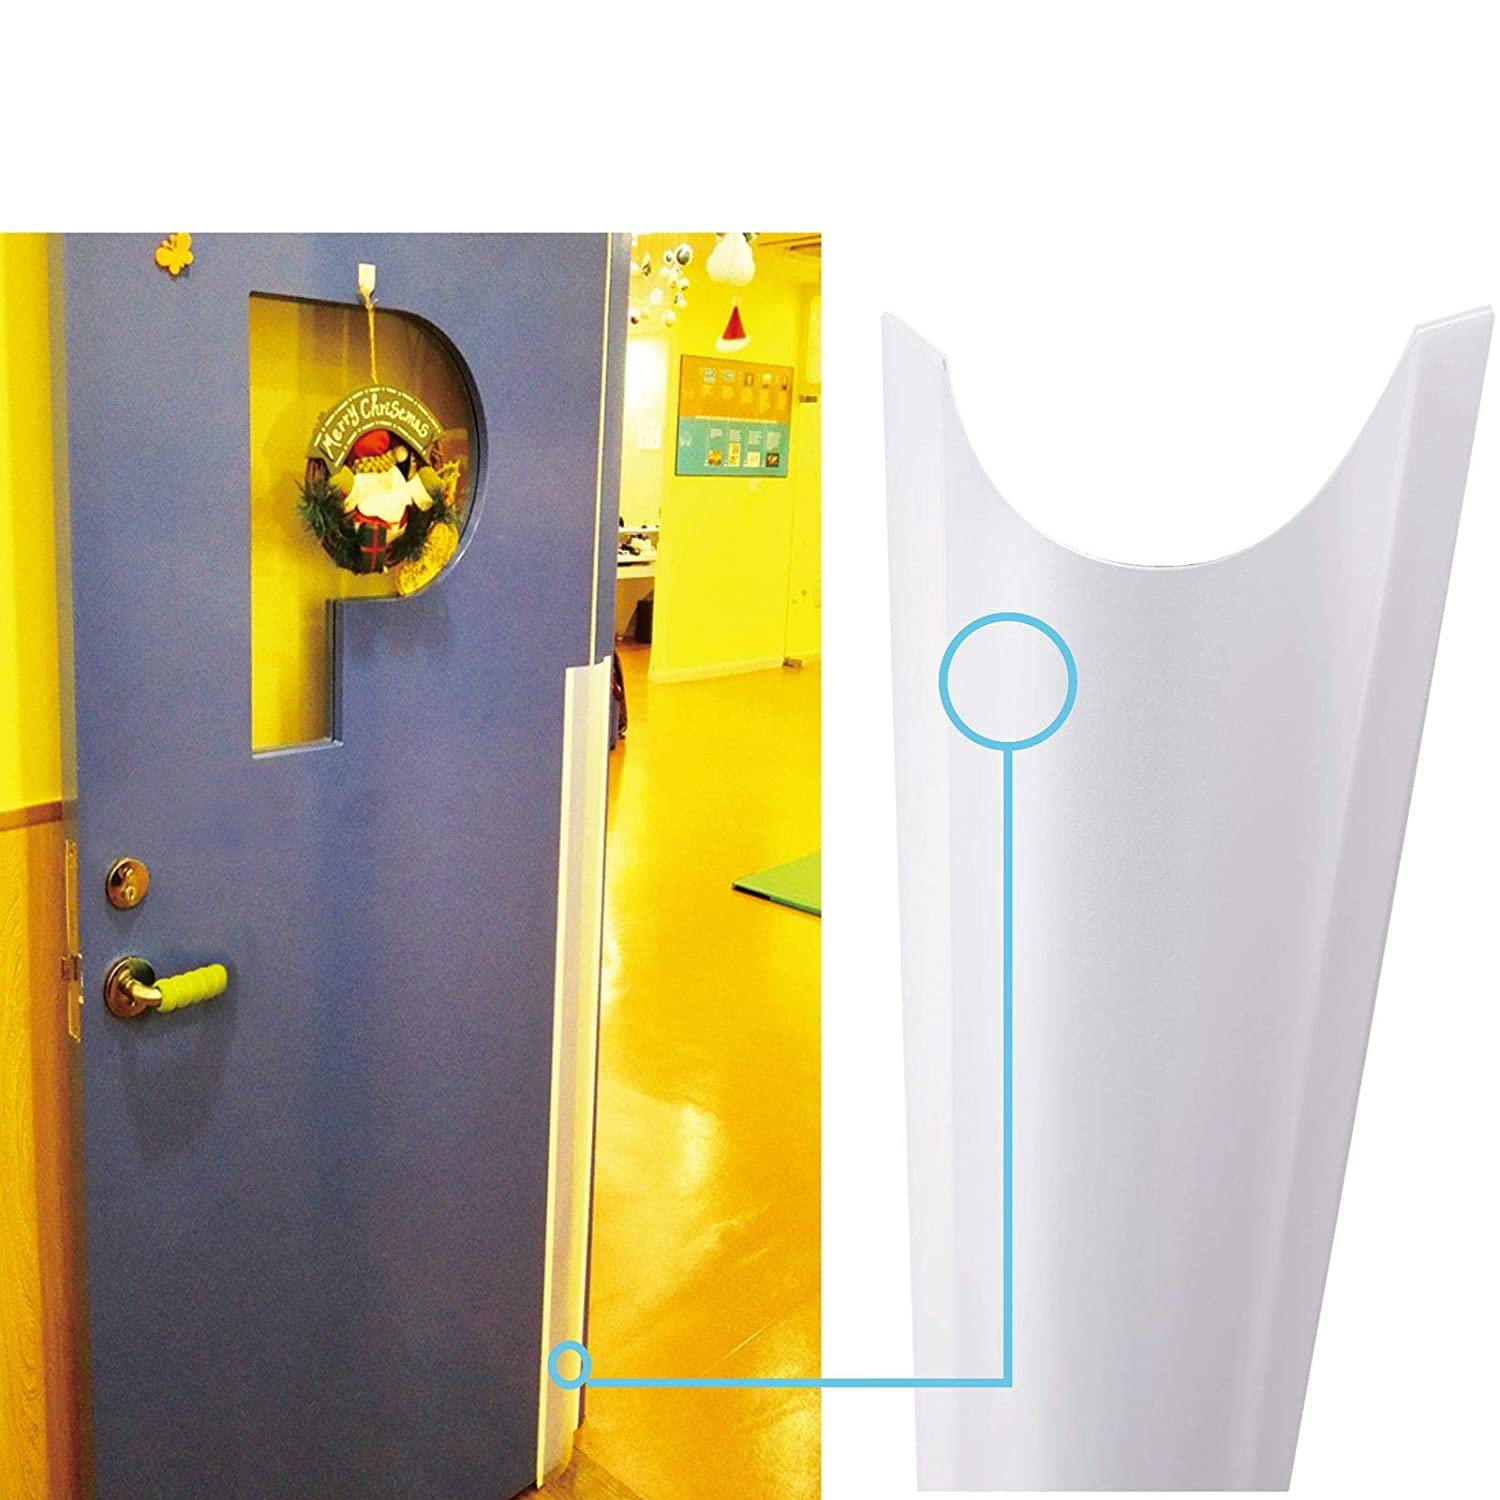 AILUOQI Finger Pinch Protector Guards for Home Door Hinges. Door Shield Guards for Baby Proofing, Kids. Roll-up Design 51.2